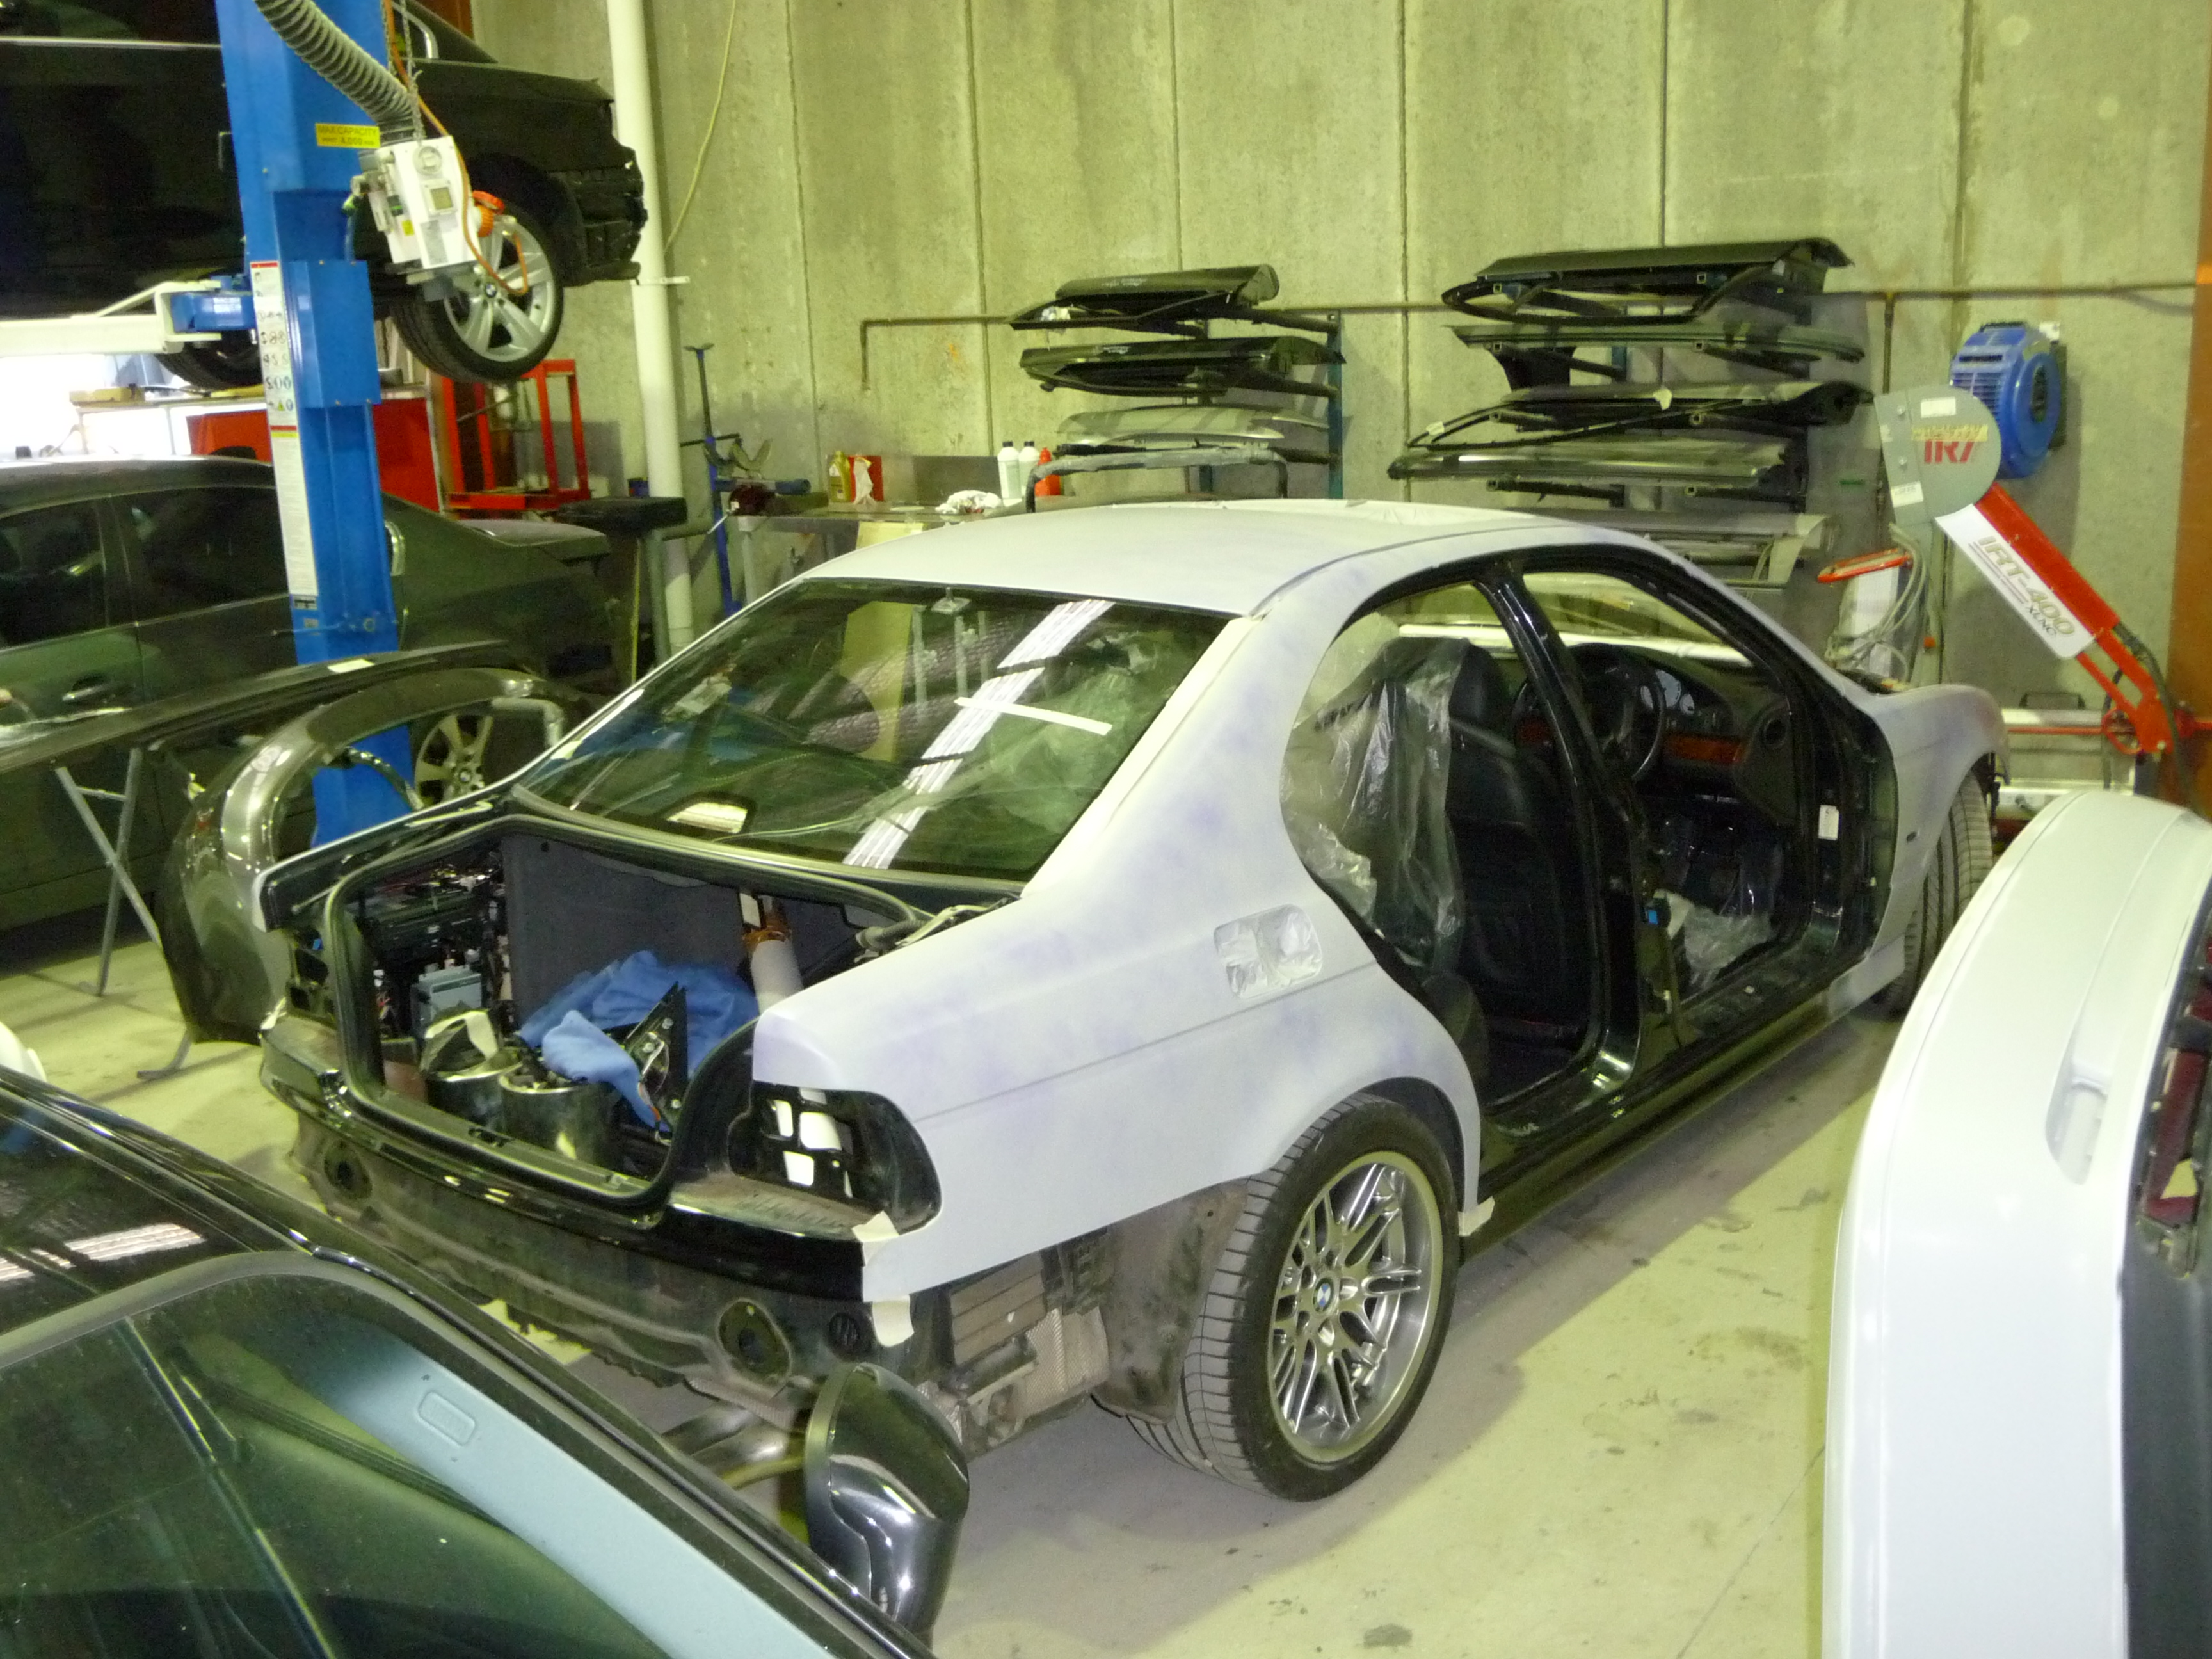 My Carbon Black bare metal respray - progress photos-m5-primer-005.jpg